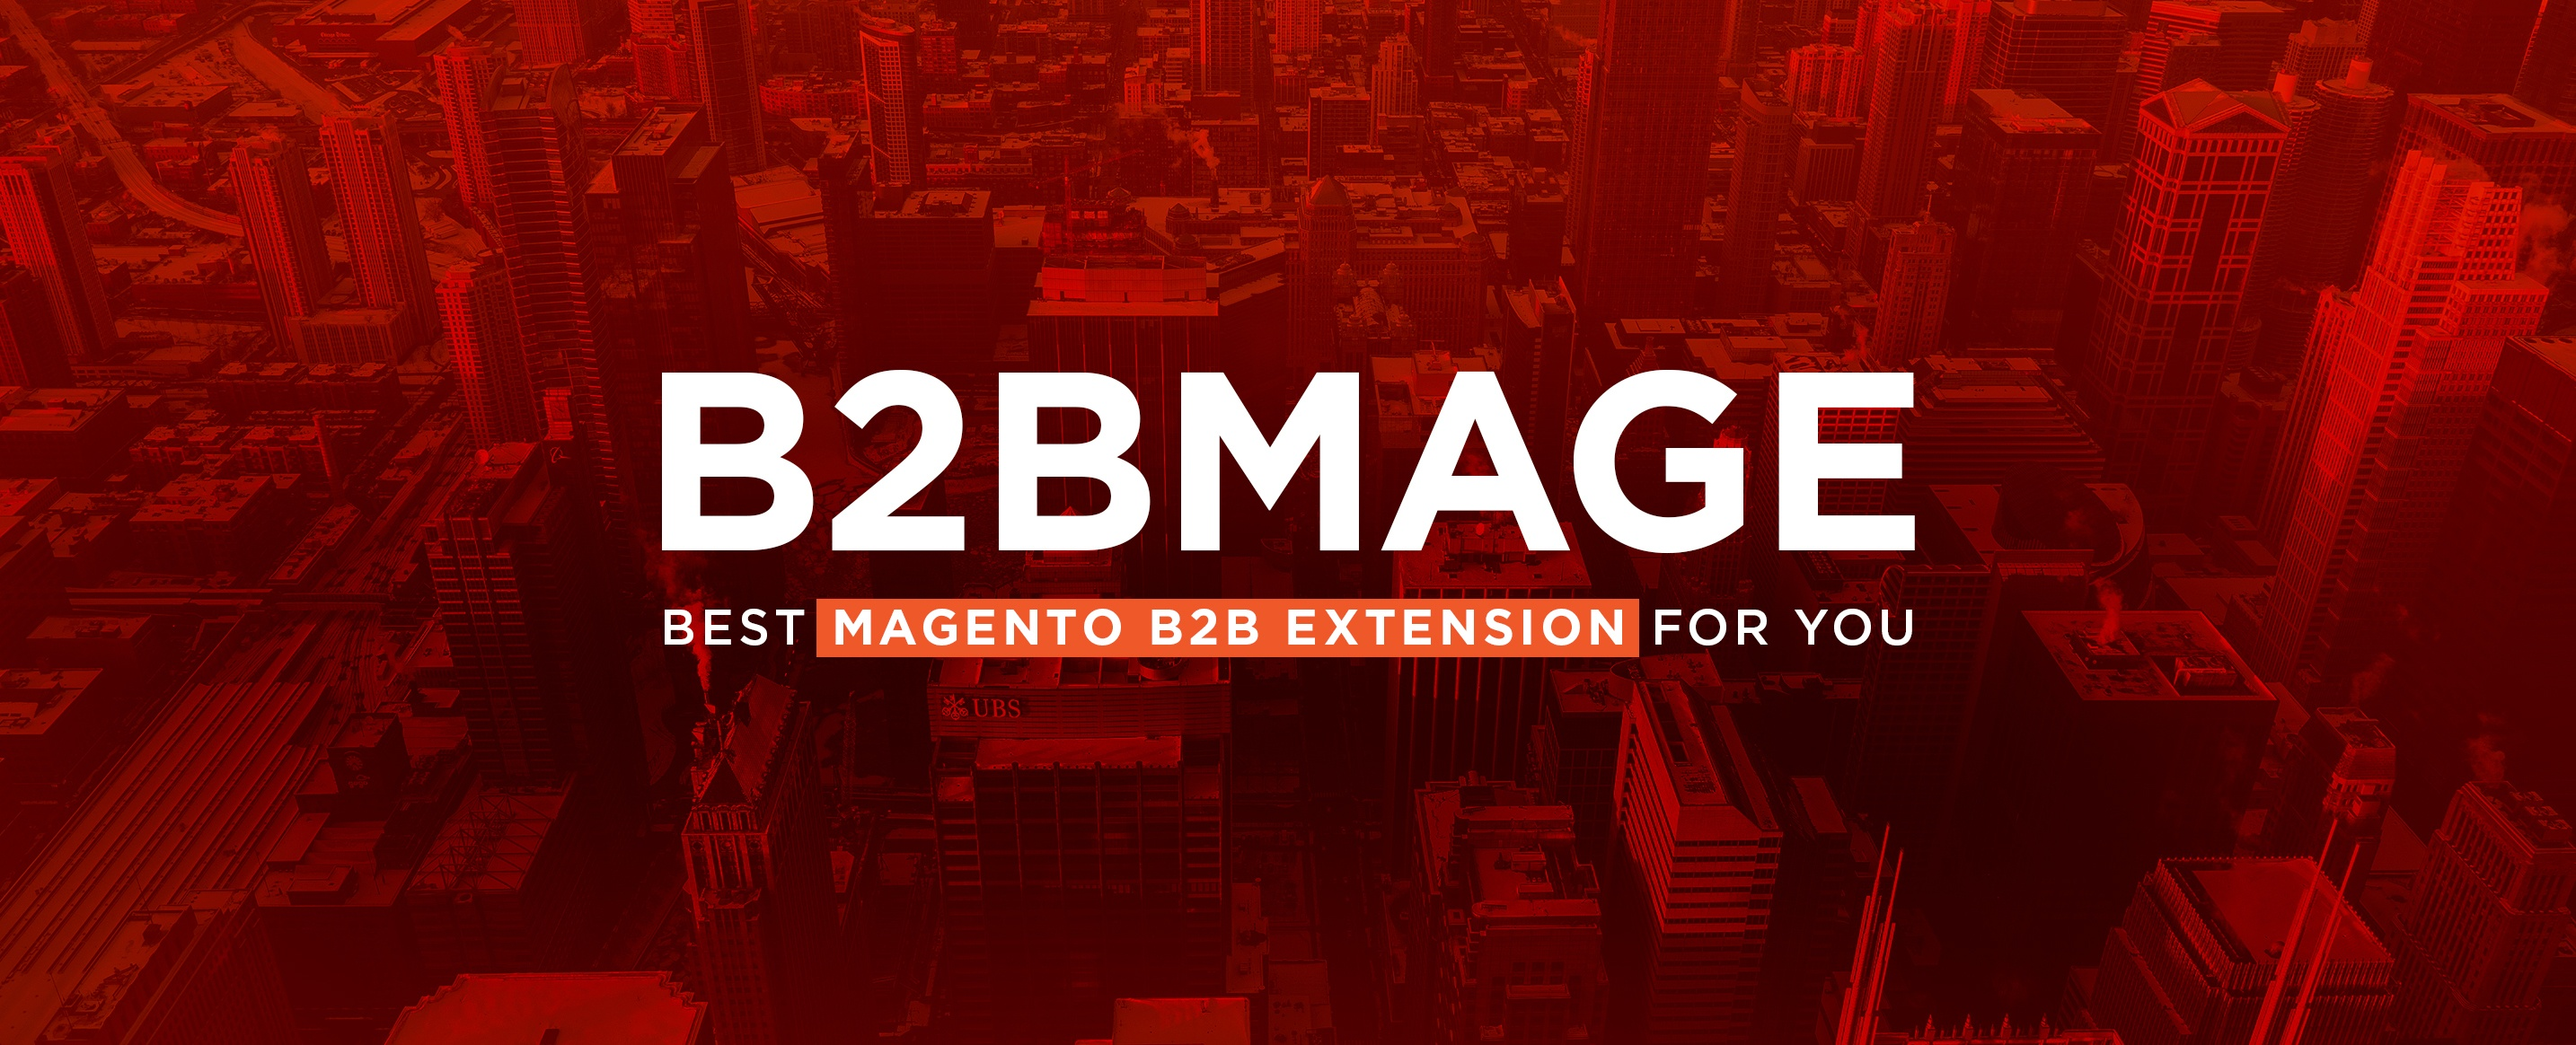 B2BMage---Best-Magento-B2B-Extension-for-You